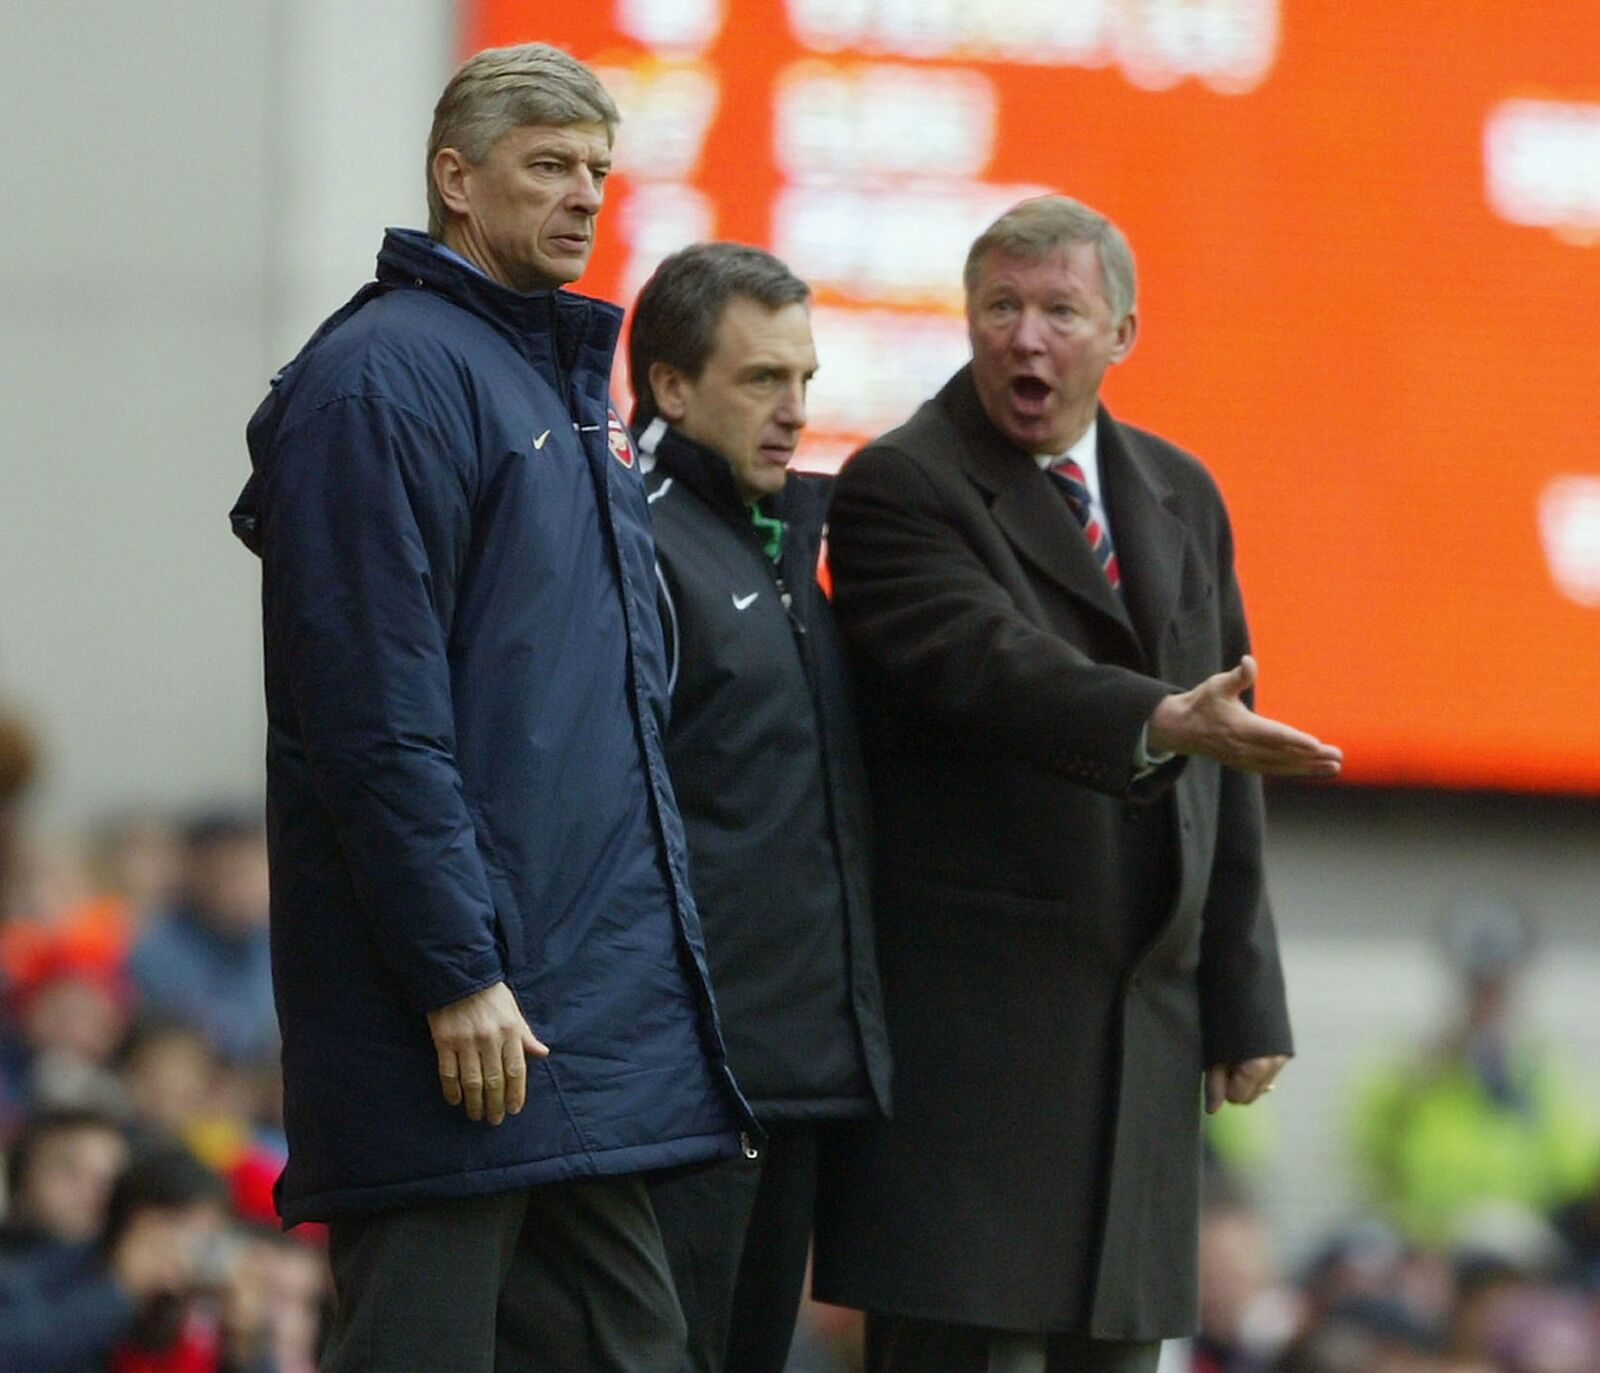 Throwback Thursday: Arsenal, Man United, and The Battle of the Buffet